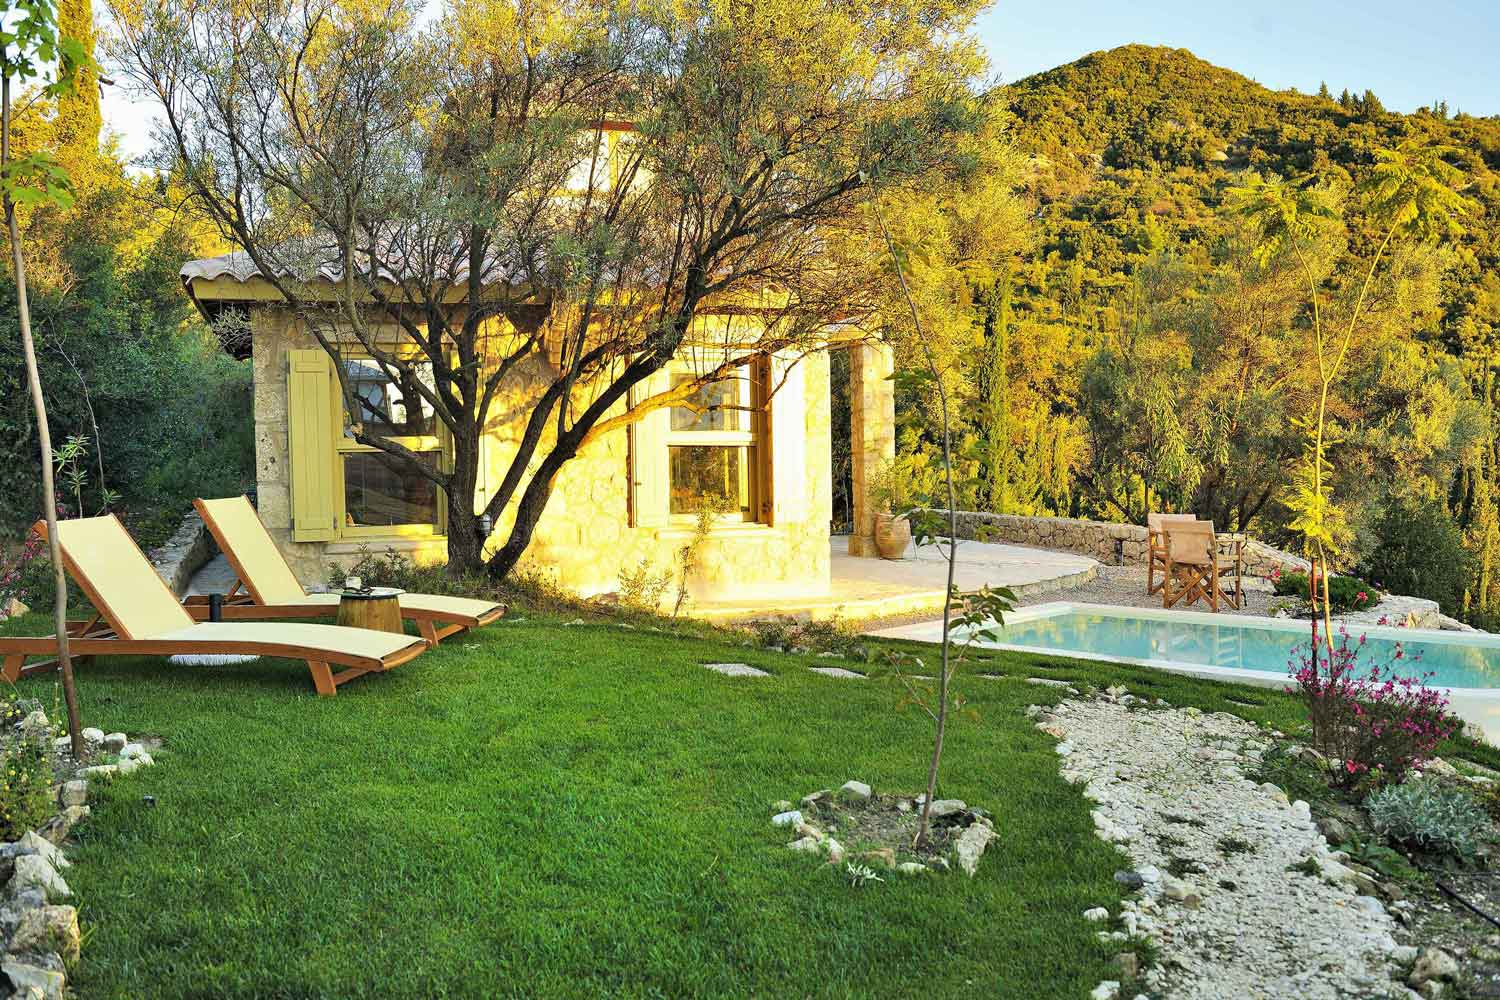 private pool villa at Ionian islands, lovely pool garden